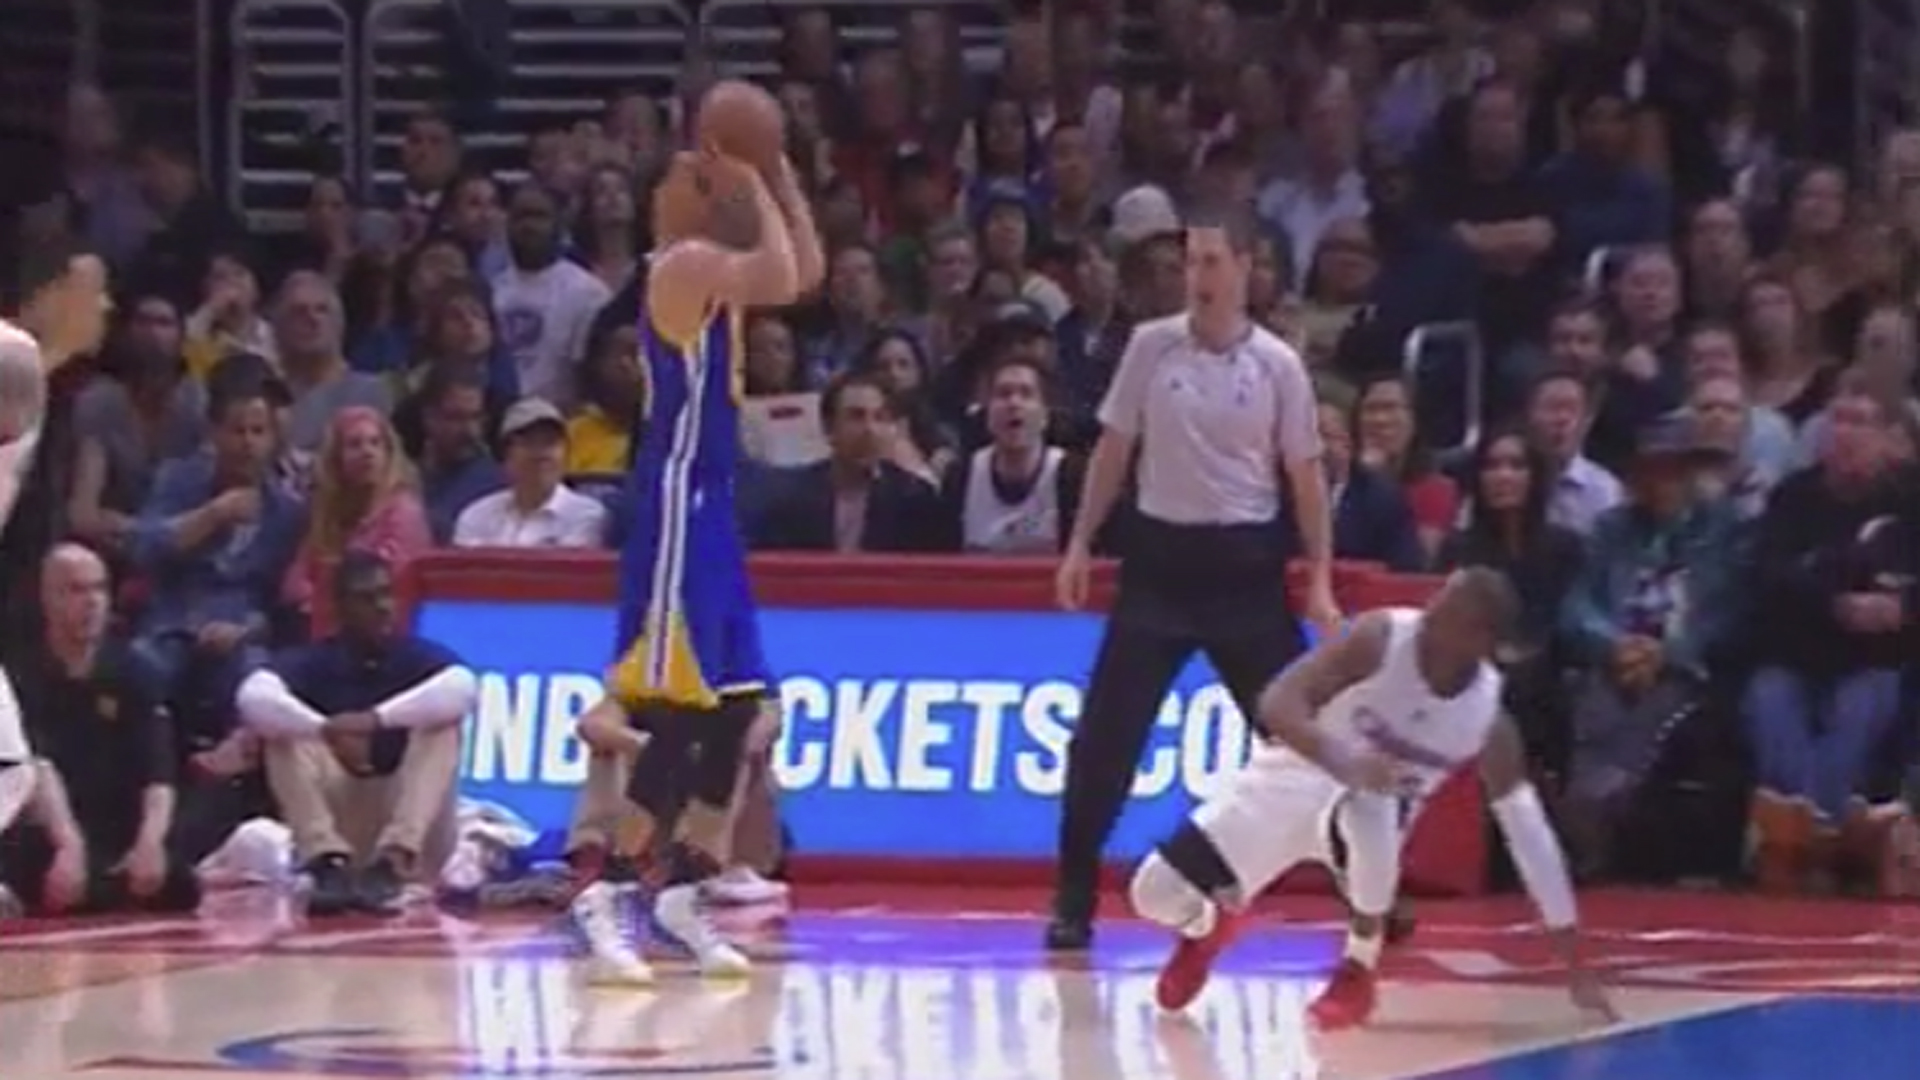 Steph Curry breaks Chris Paul's ankles with insane dribble ...